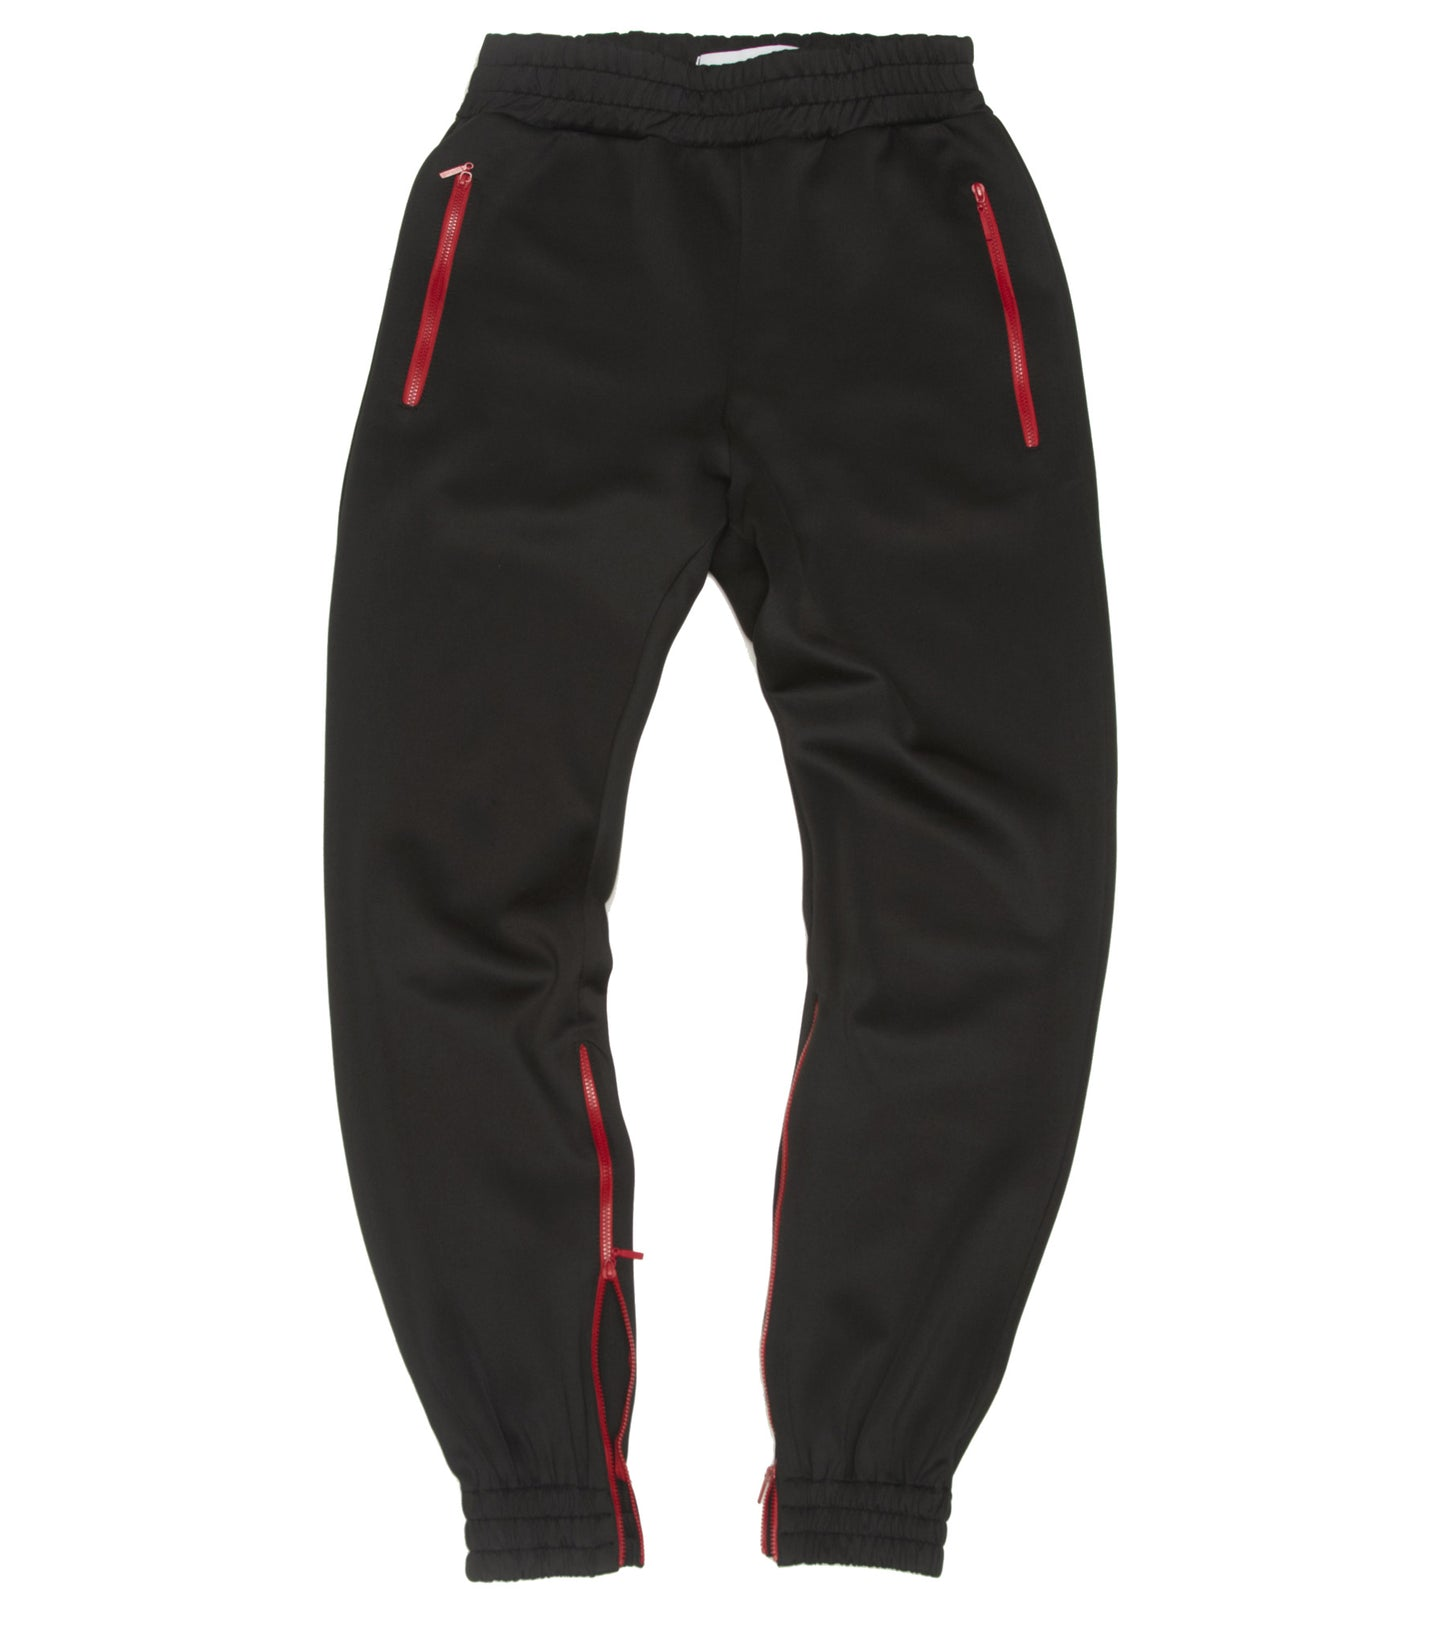 Boys Sport Pants - krawaii.com